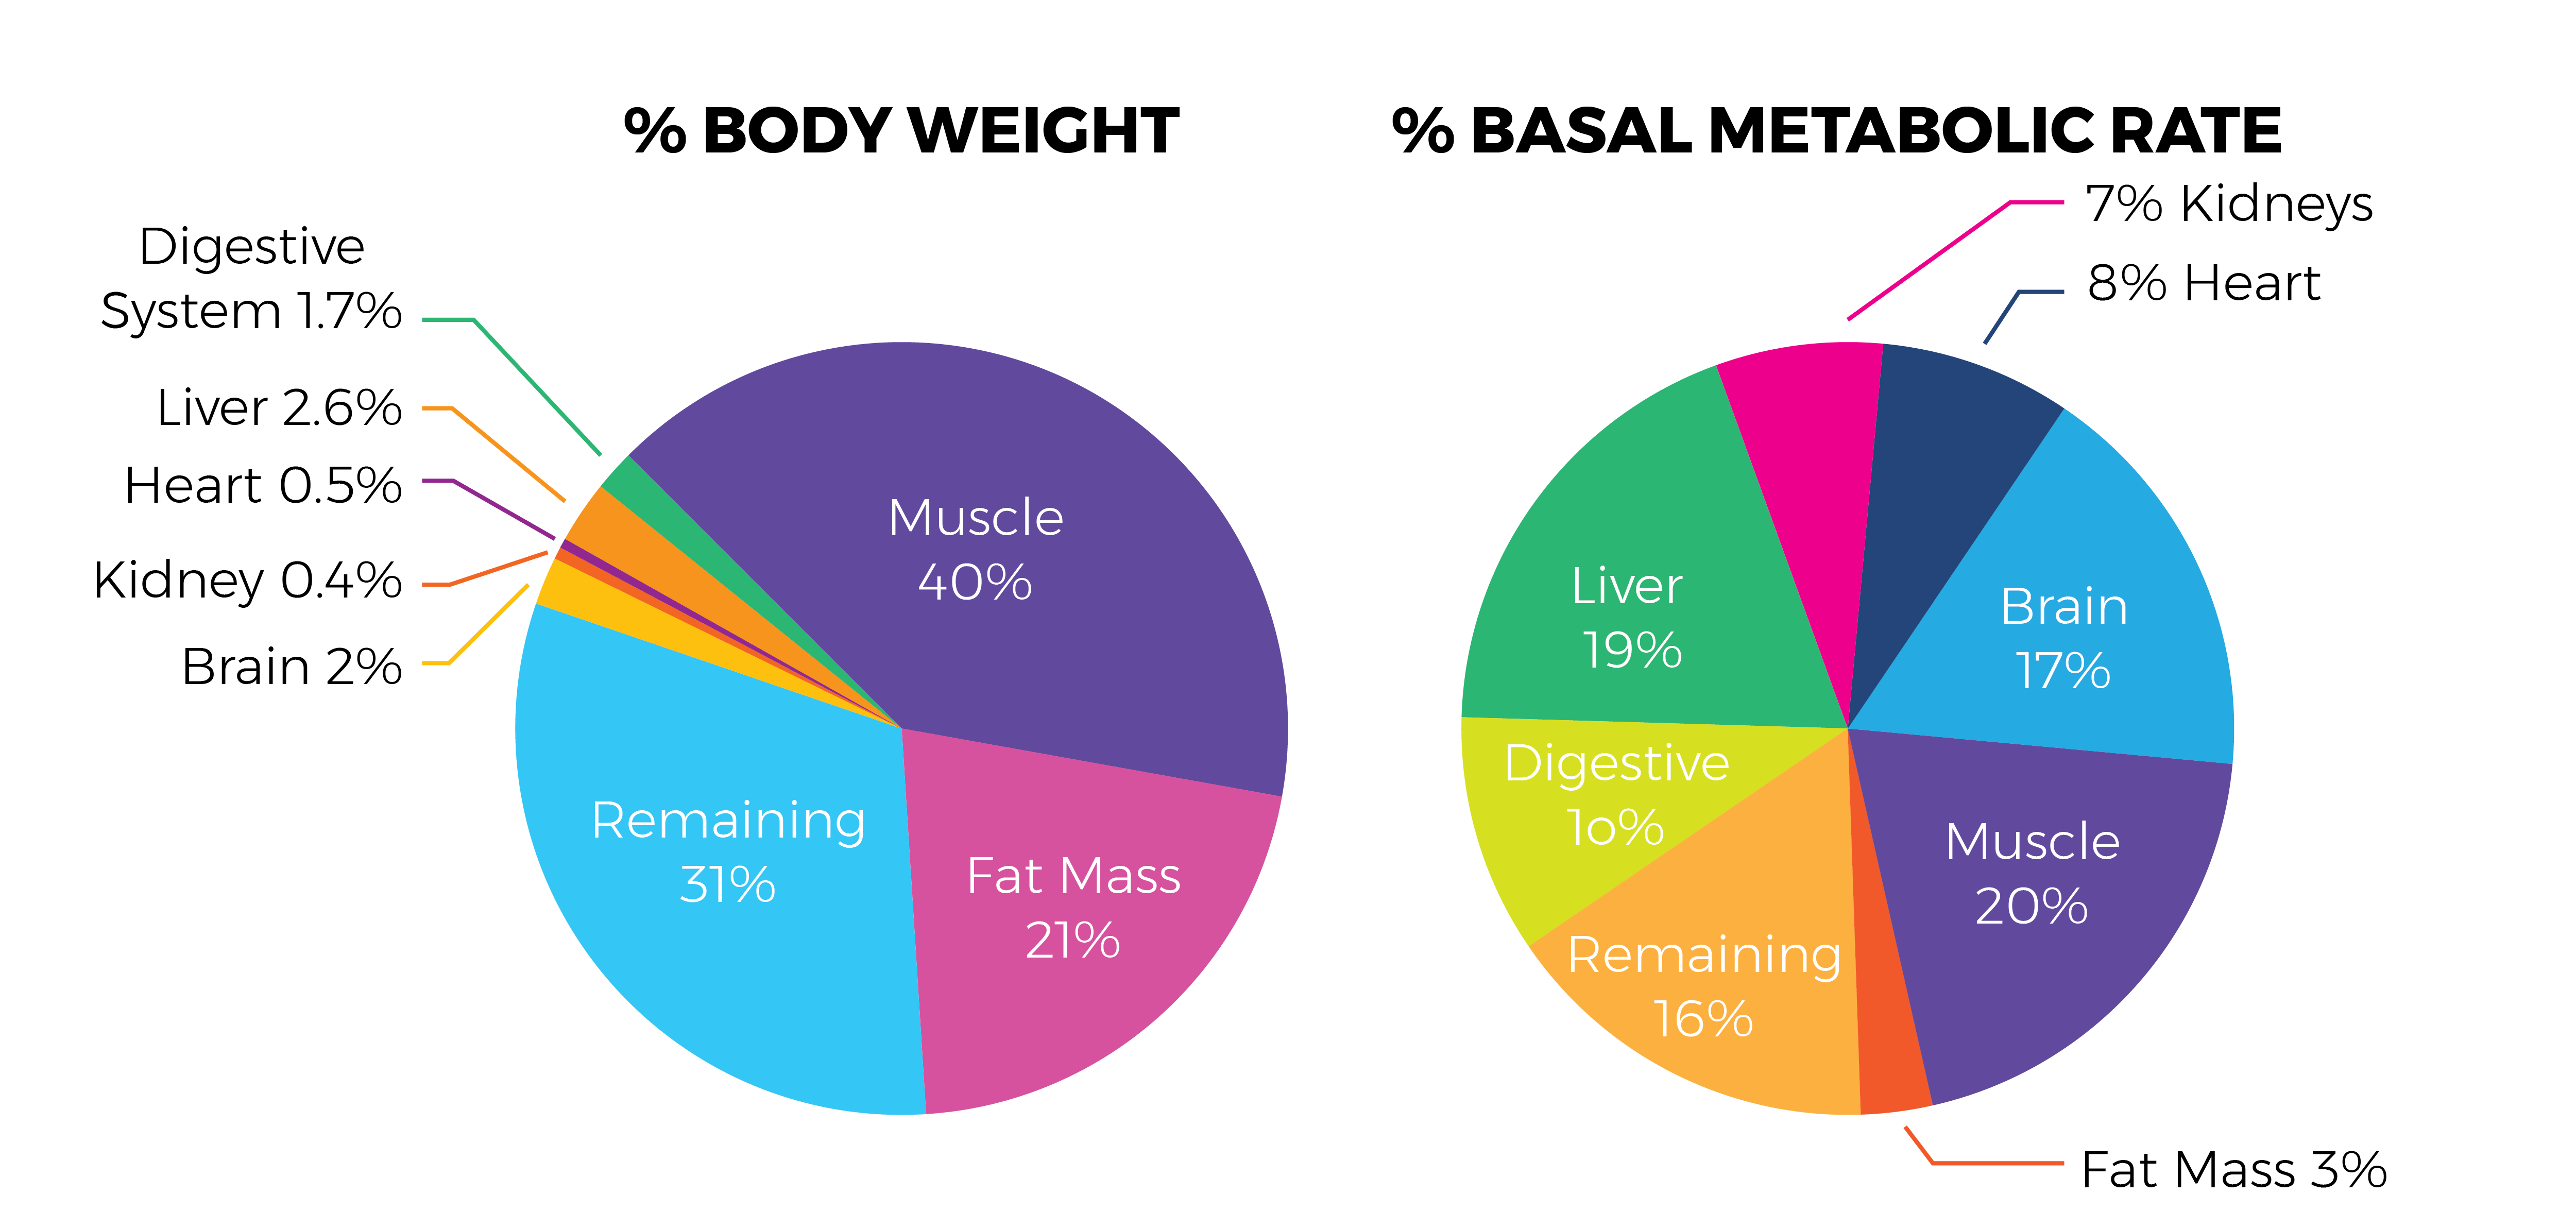 hight resolution of muscle percentage diagram